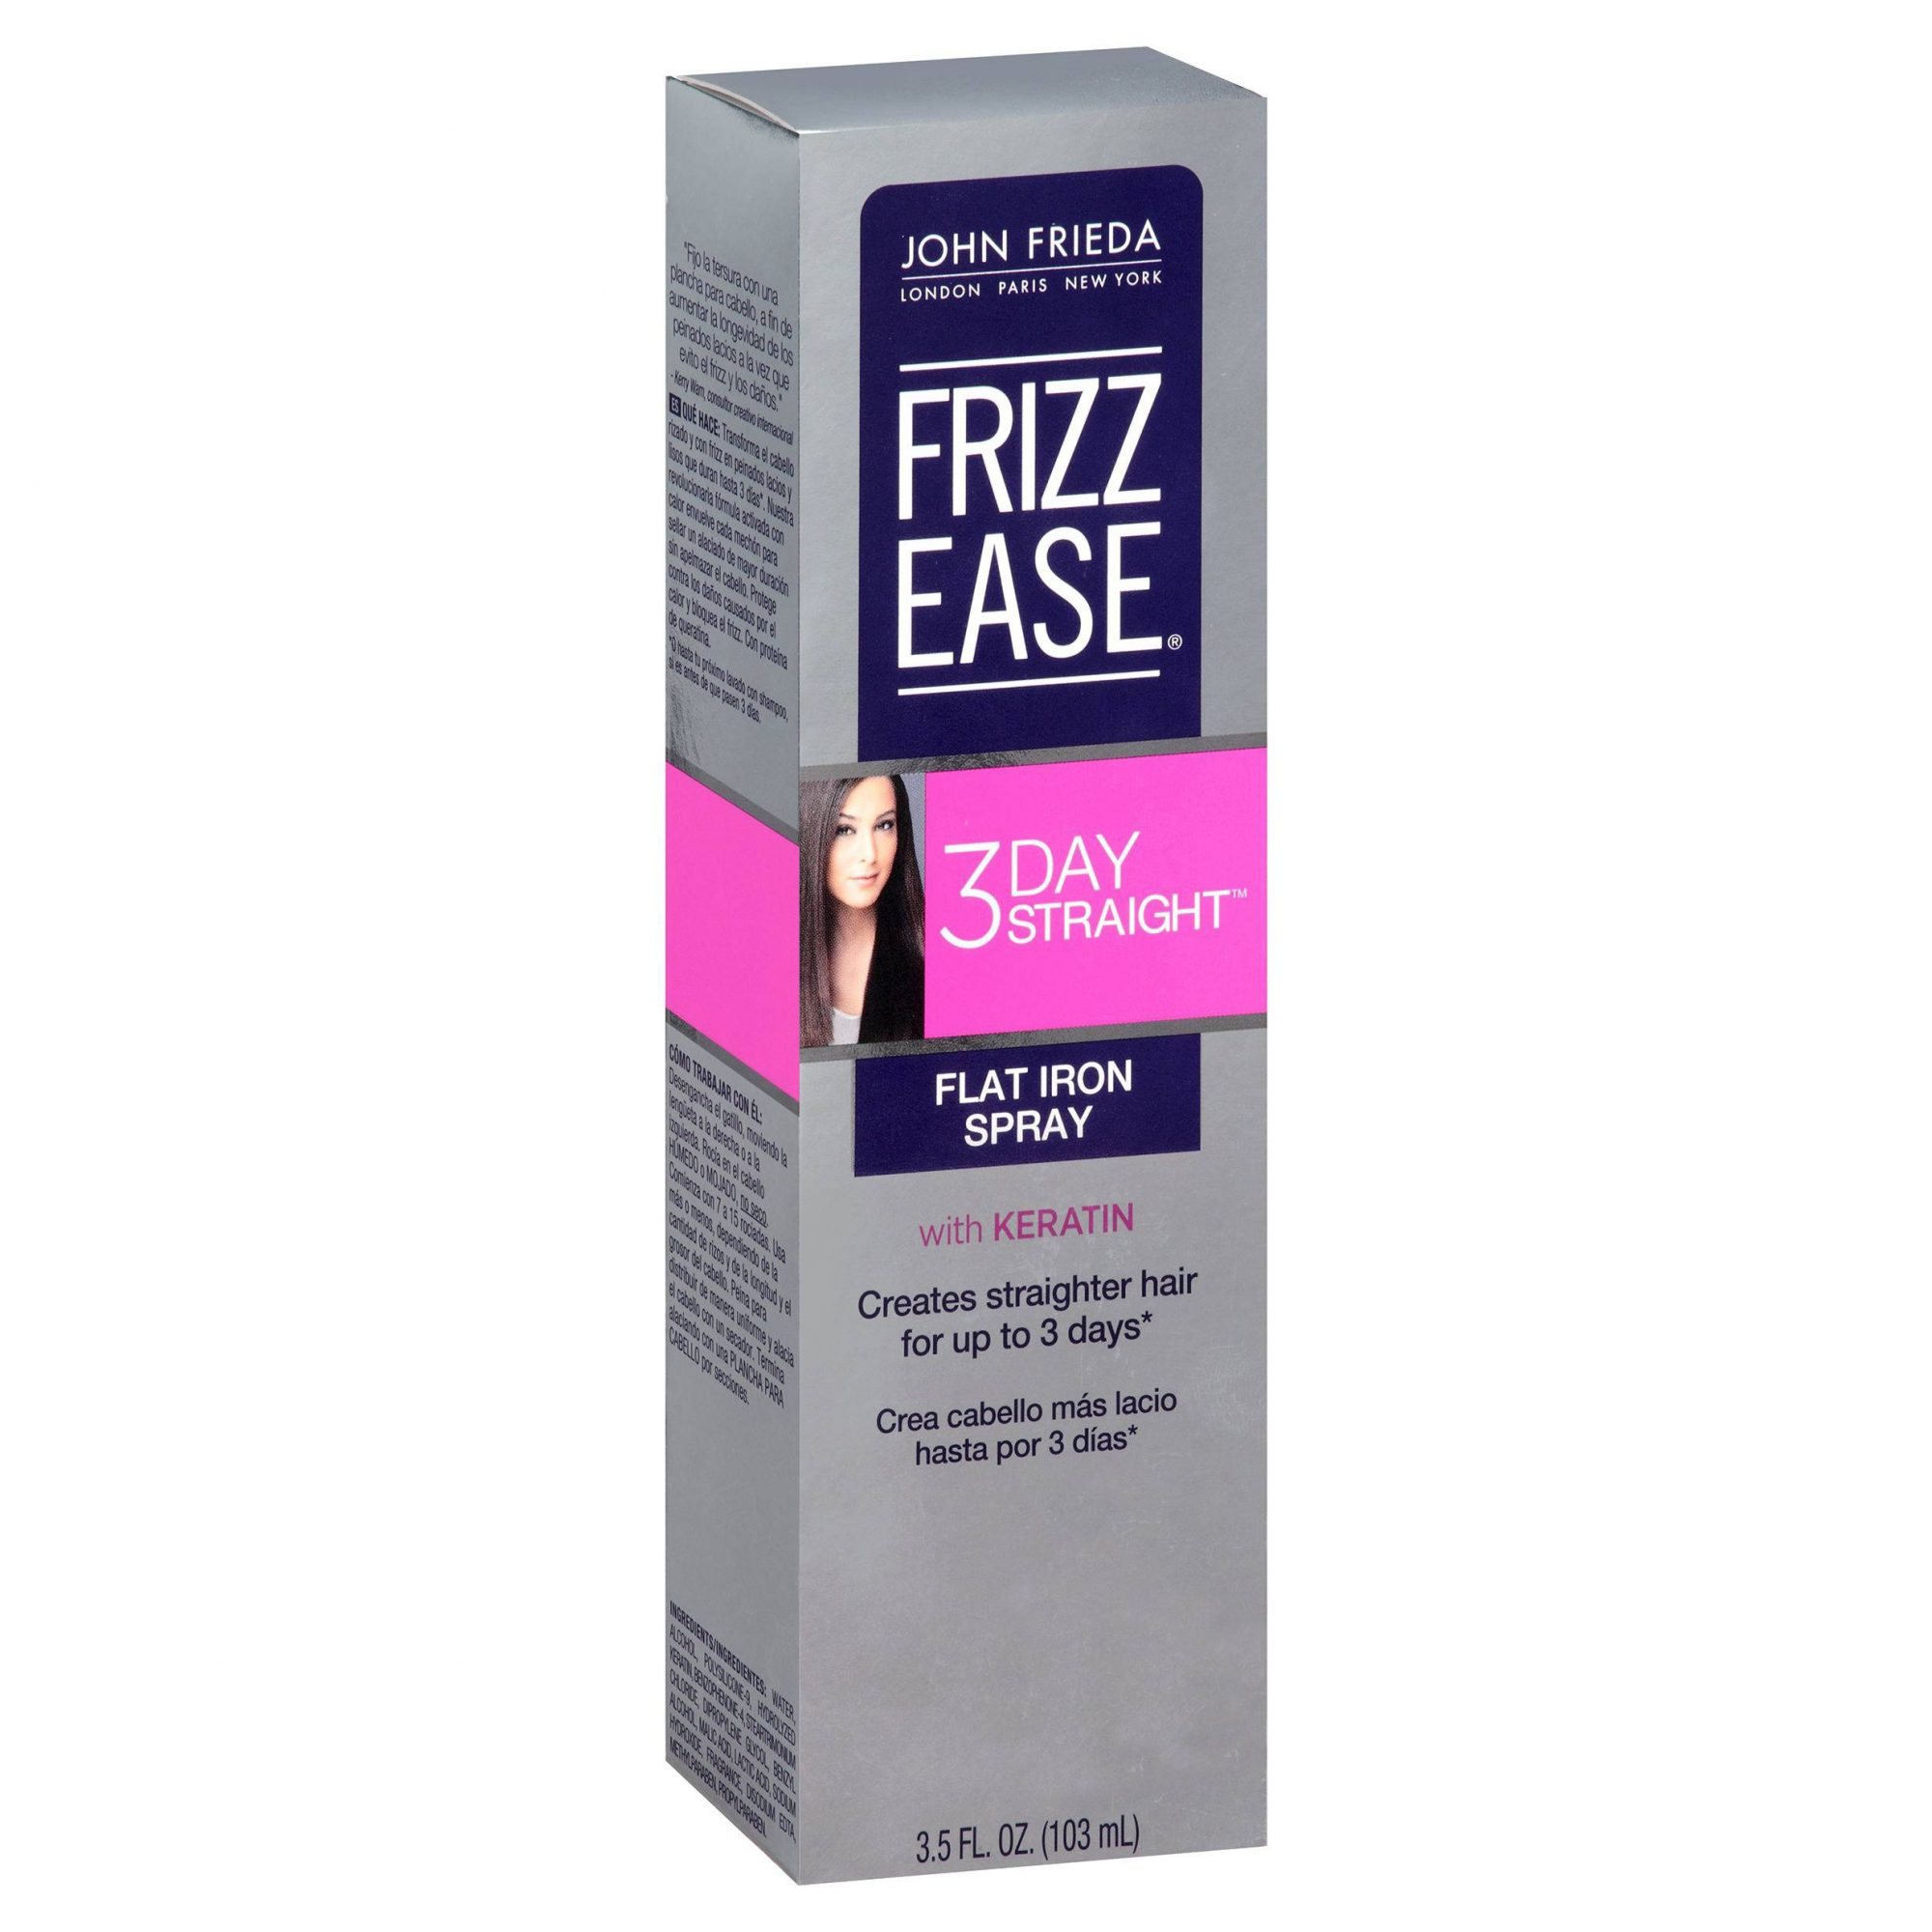 John Frieda Frizz Ease 3-Day Straight Flat Iron Spray